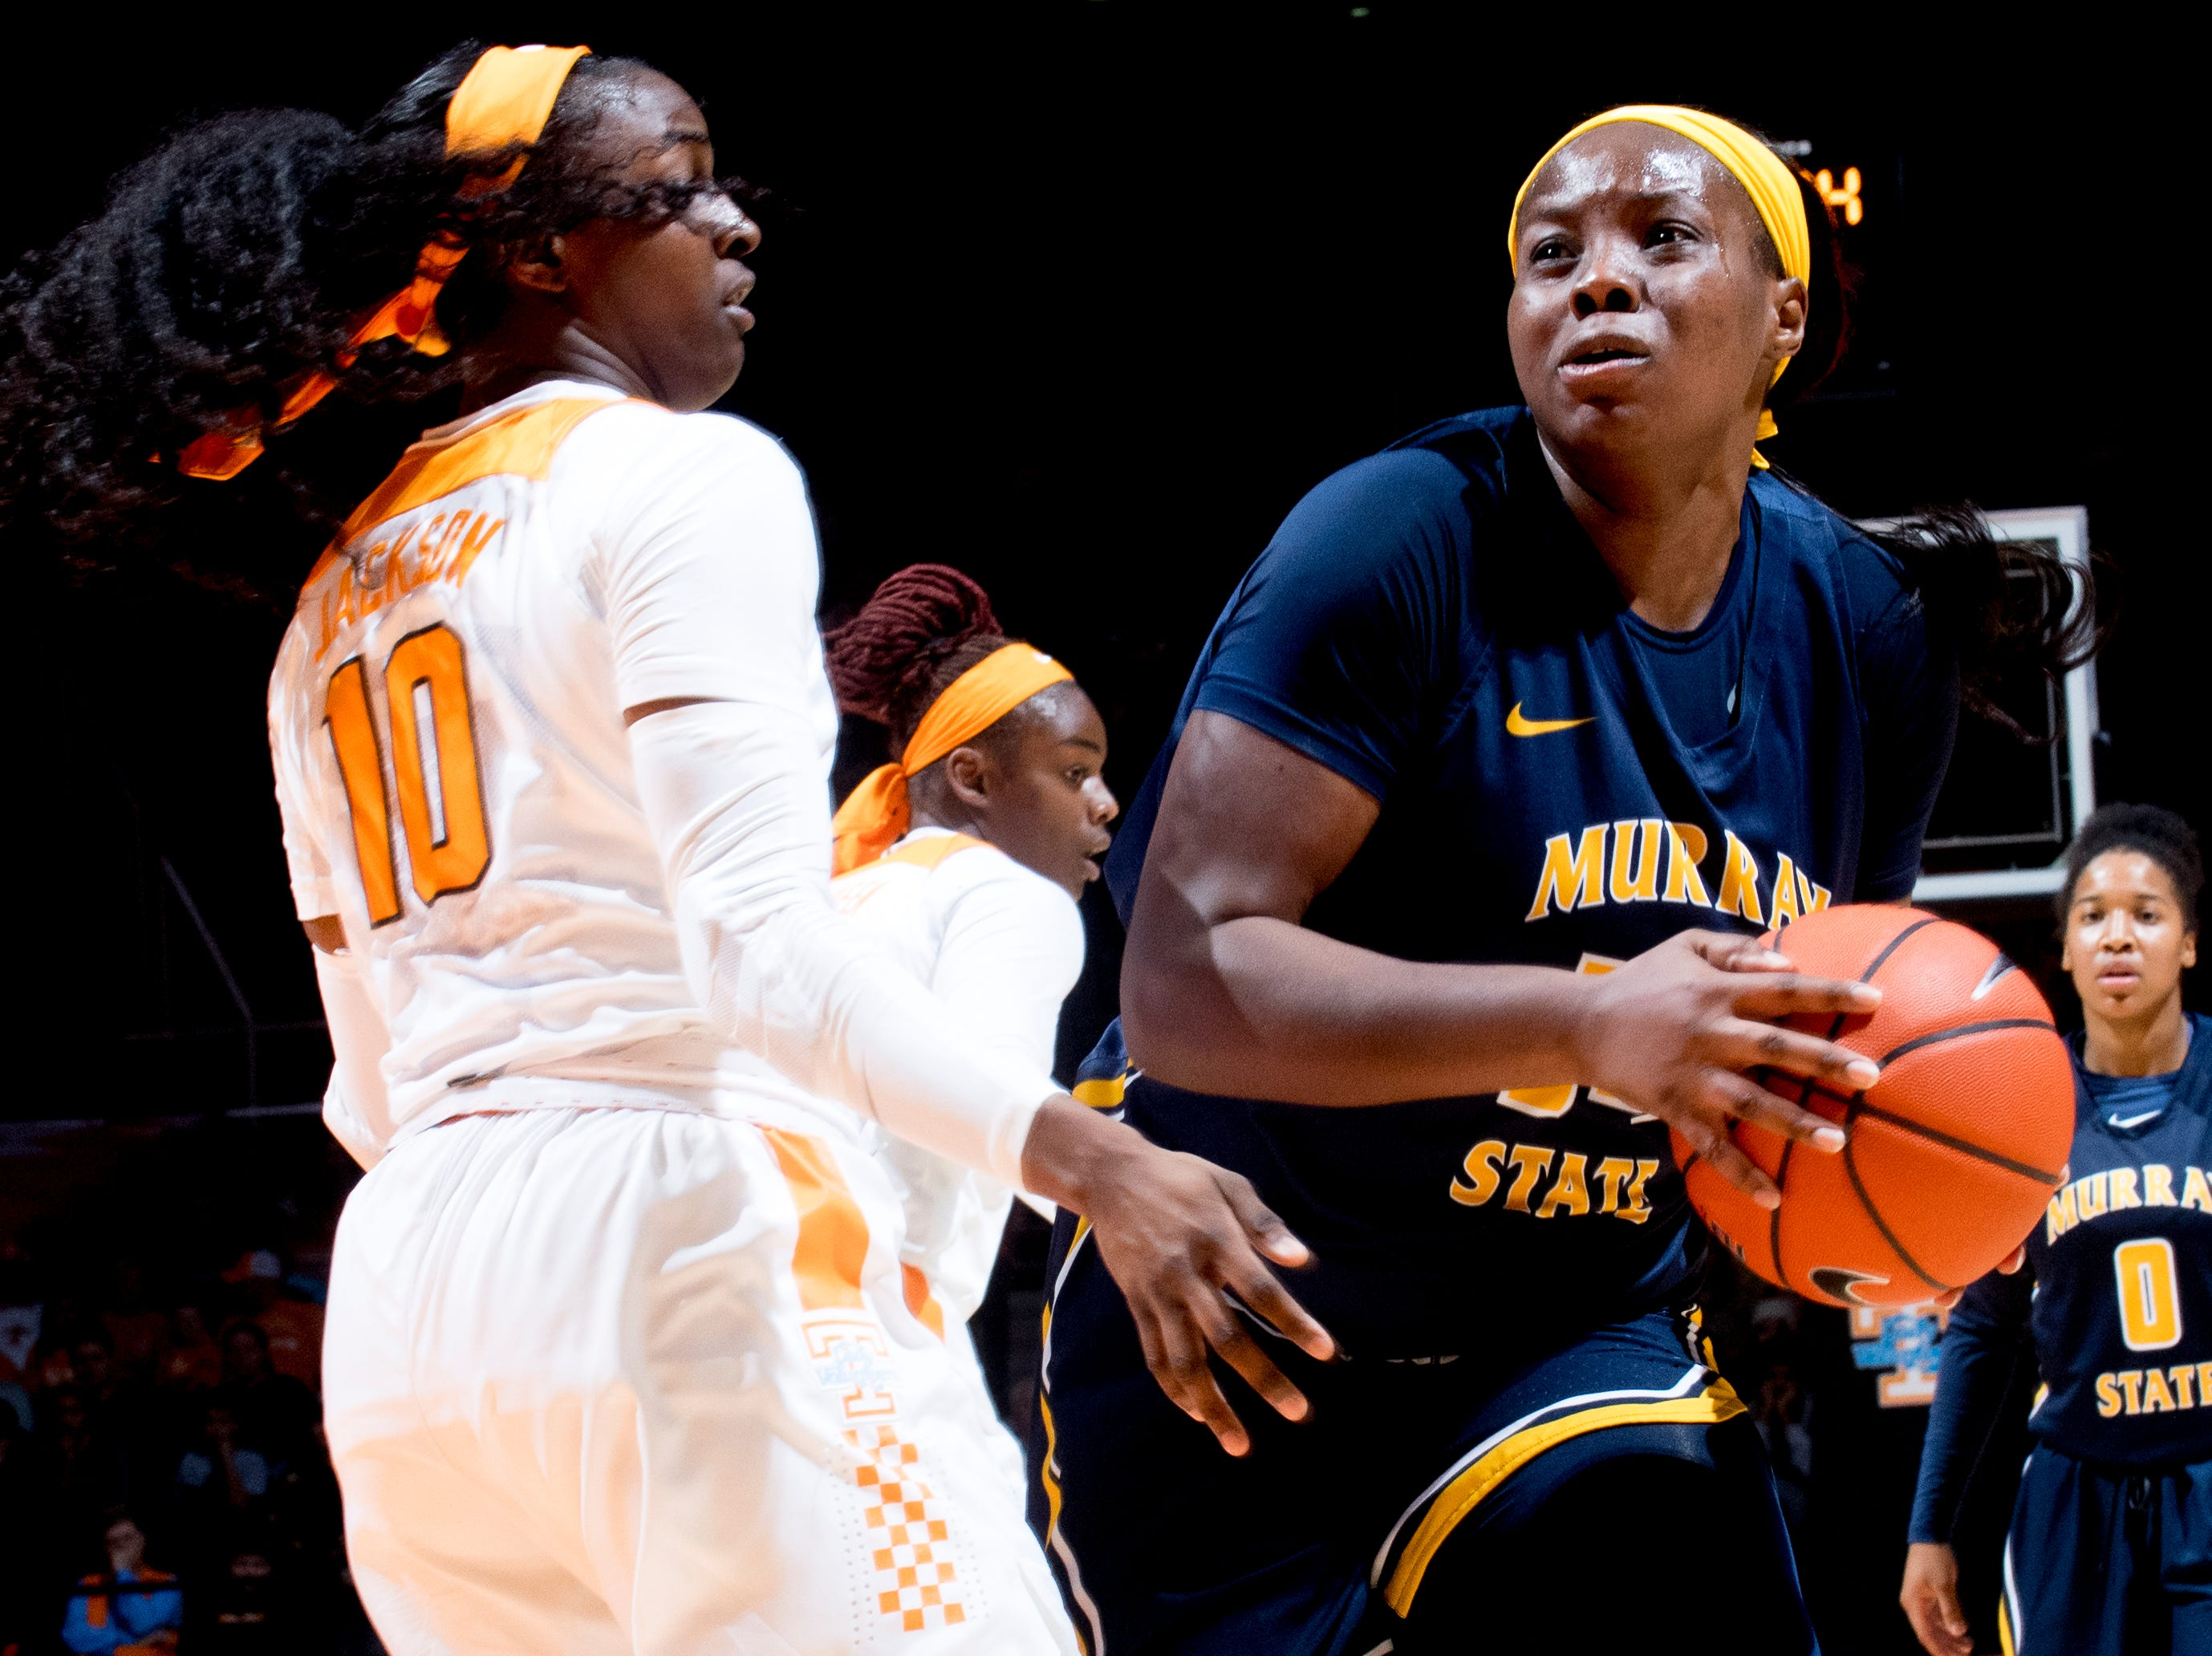 Murray State forward Cekeya Mack (20) dribbles past Tennessee guard/forward Meme Jackson (10) during a game between the Tennessee Lady Vols and Murray State at Thompson-Boling Arena in Knoxville, Tennessee on Friday, December 28, 2018.